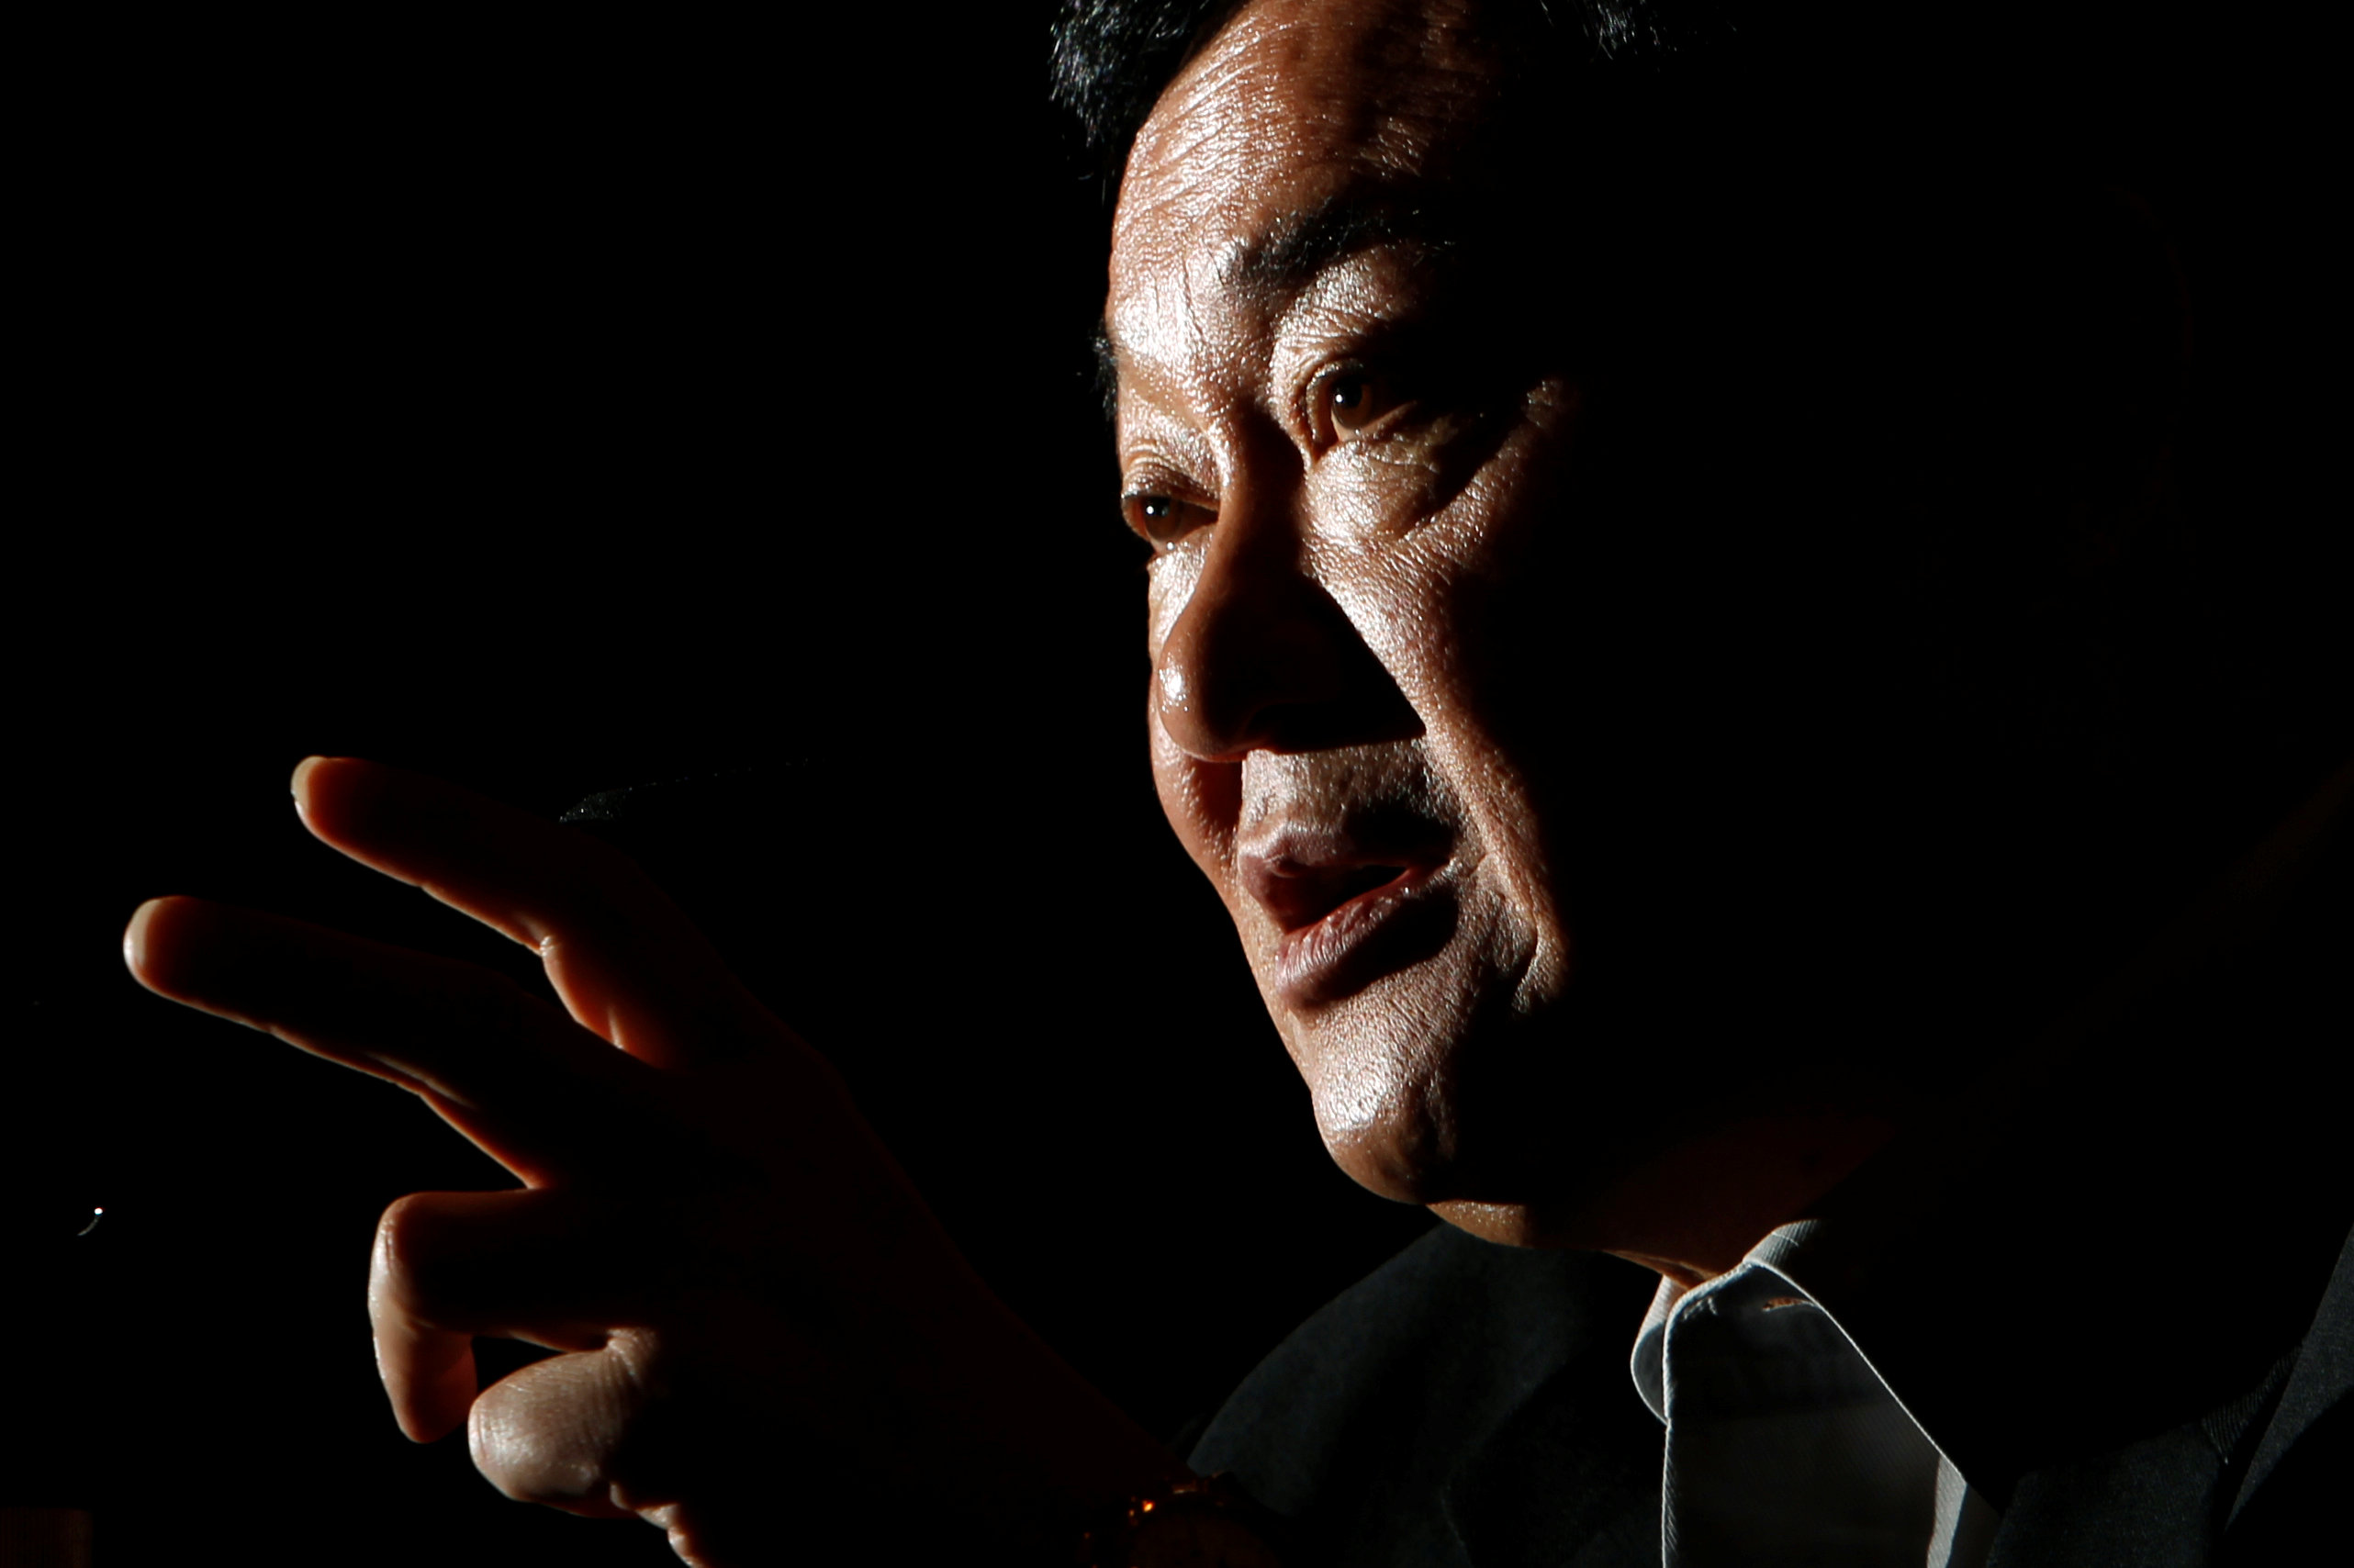 Former Thai Prime Minister Thaksin Shinawatra speaks during an interview in Tokyo in August 2011. | REUTERS